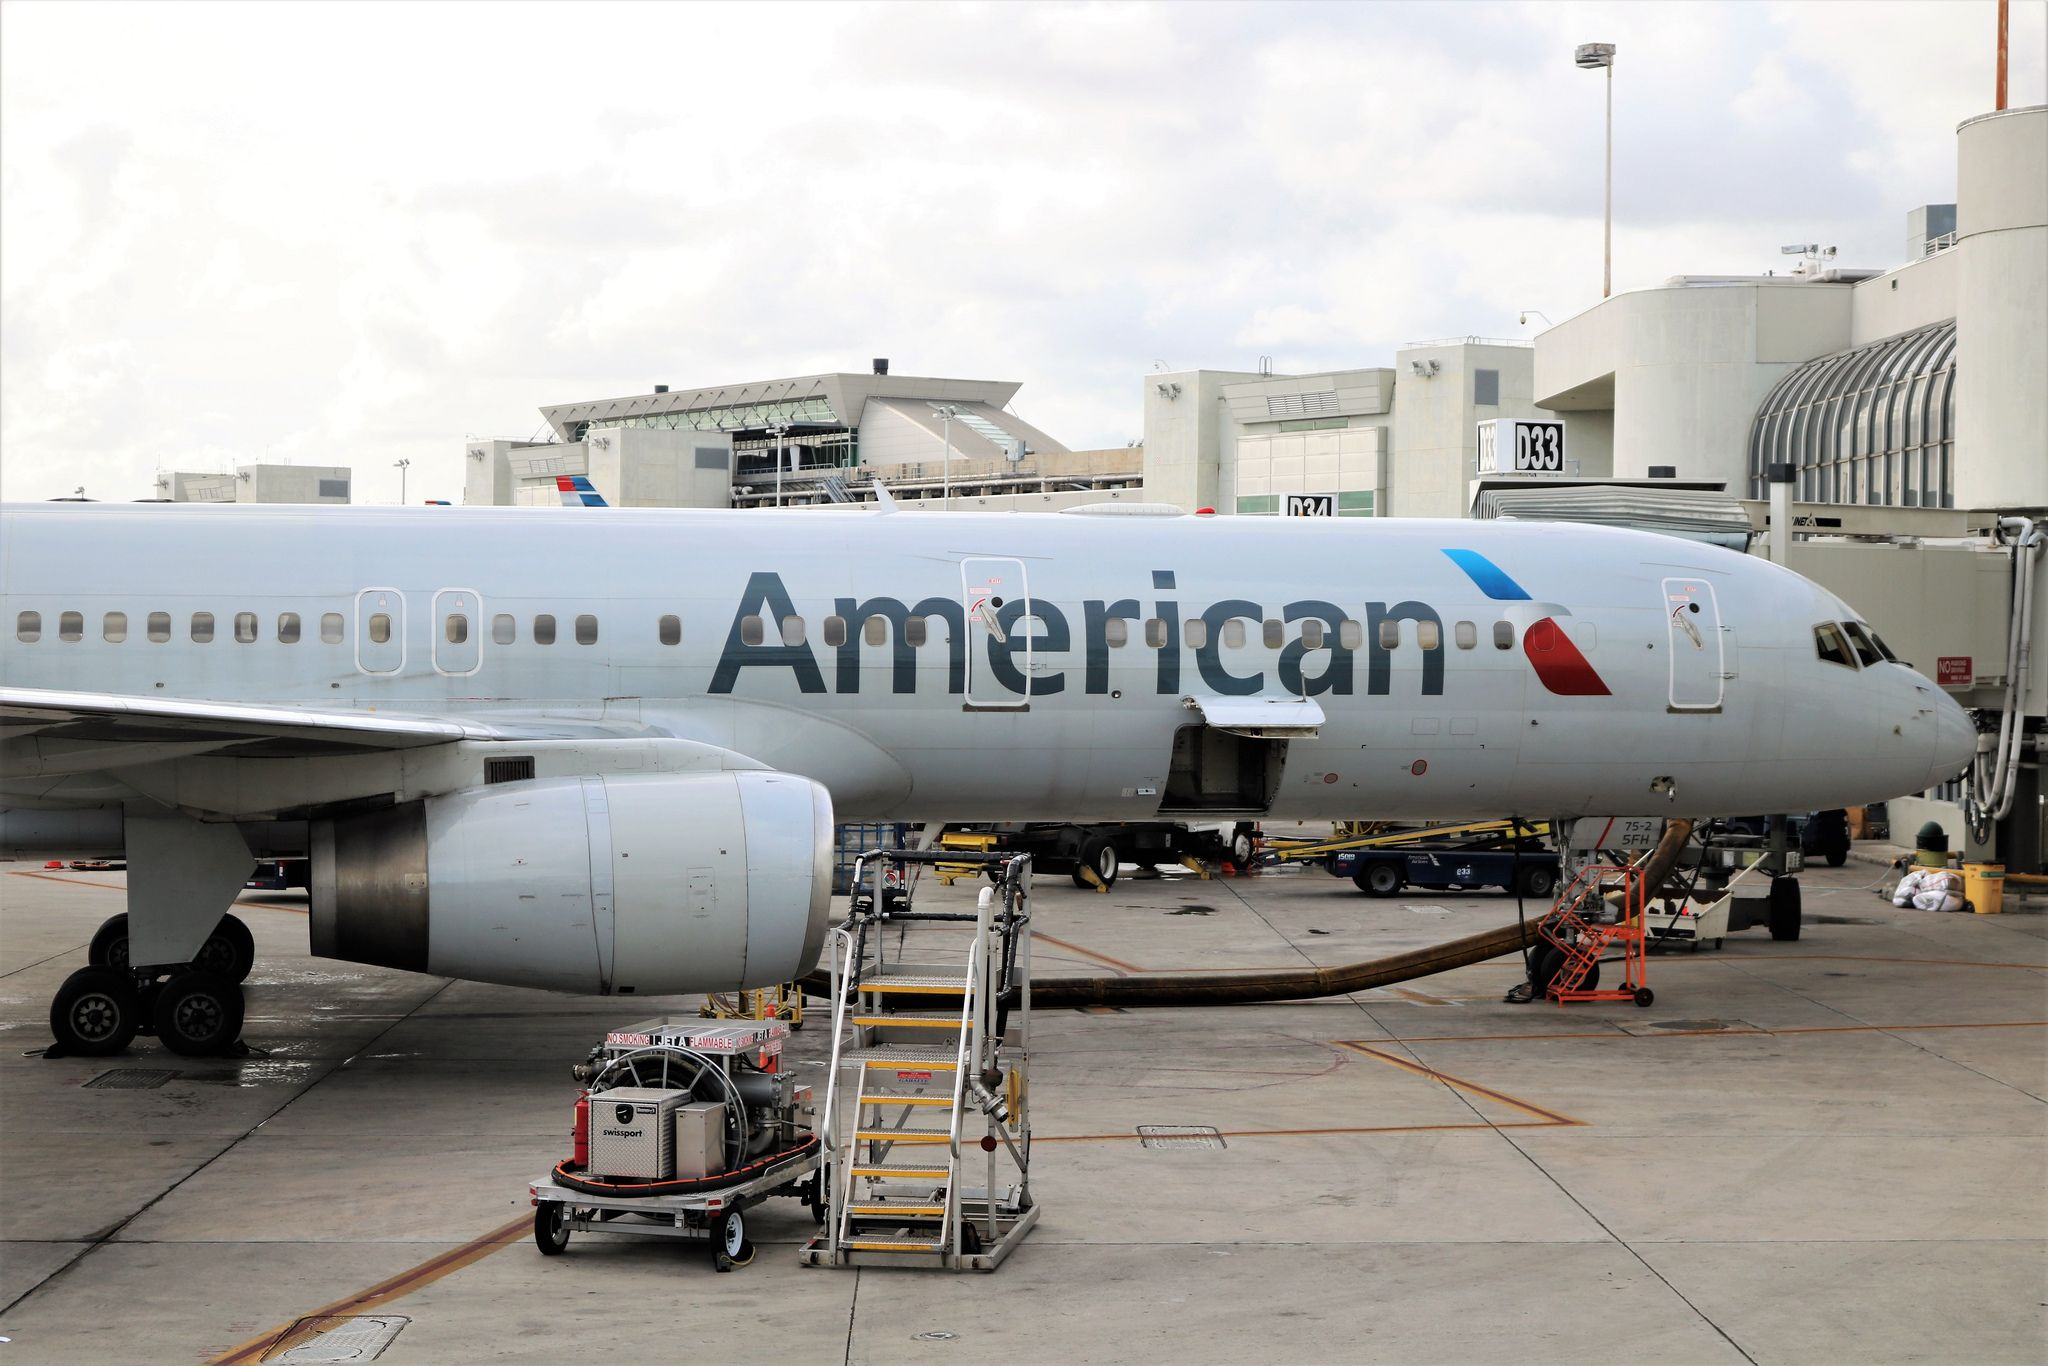 American Airlines 757 American, Cargo airlines